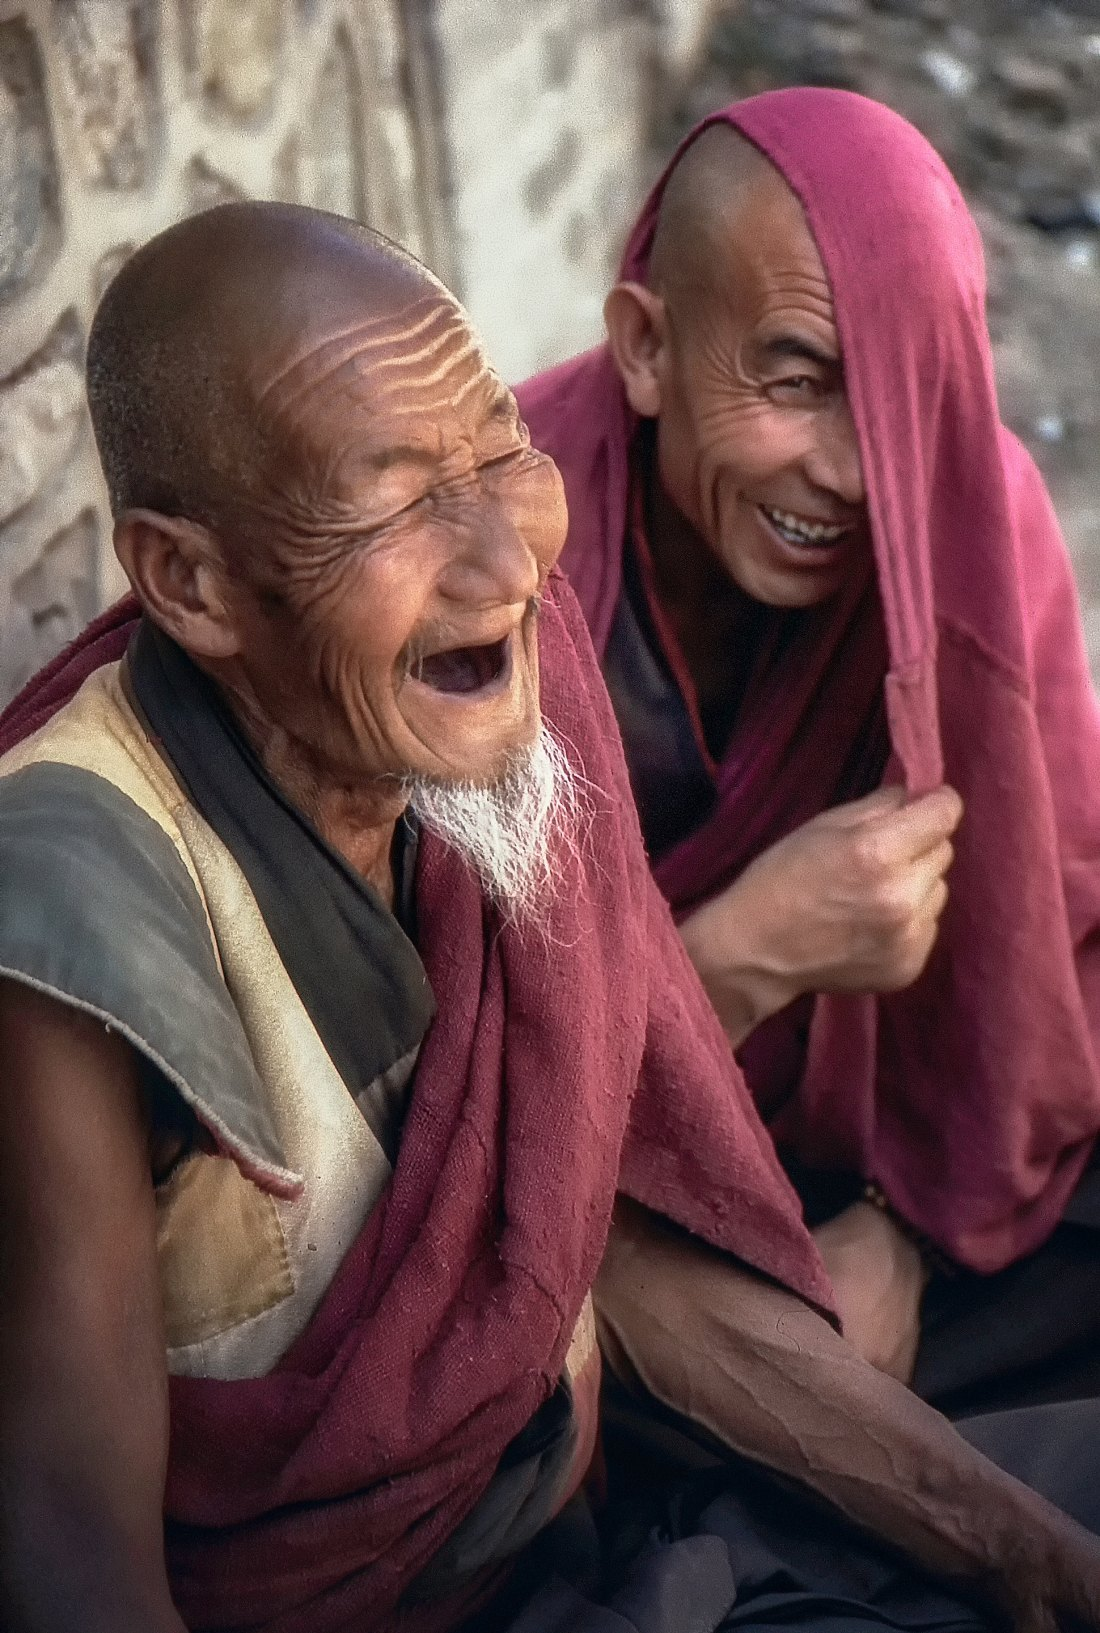 Monks laughing